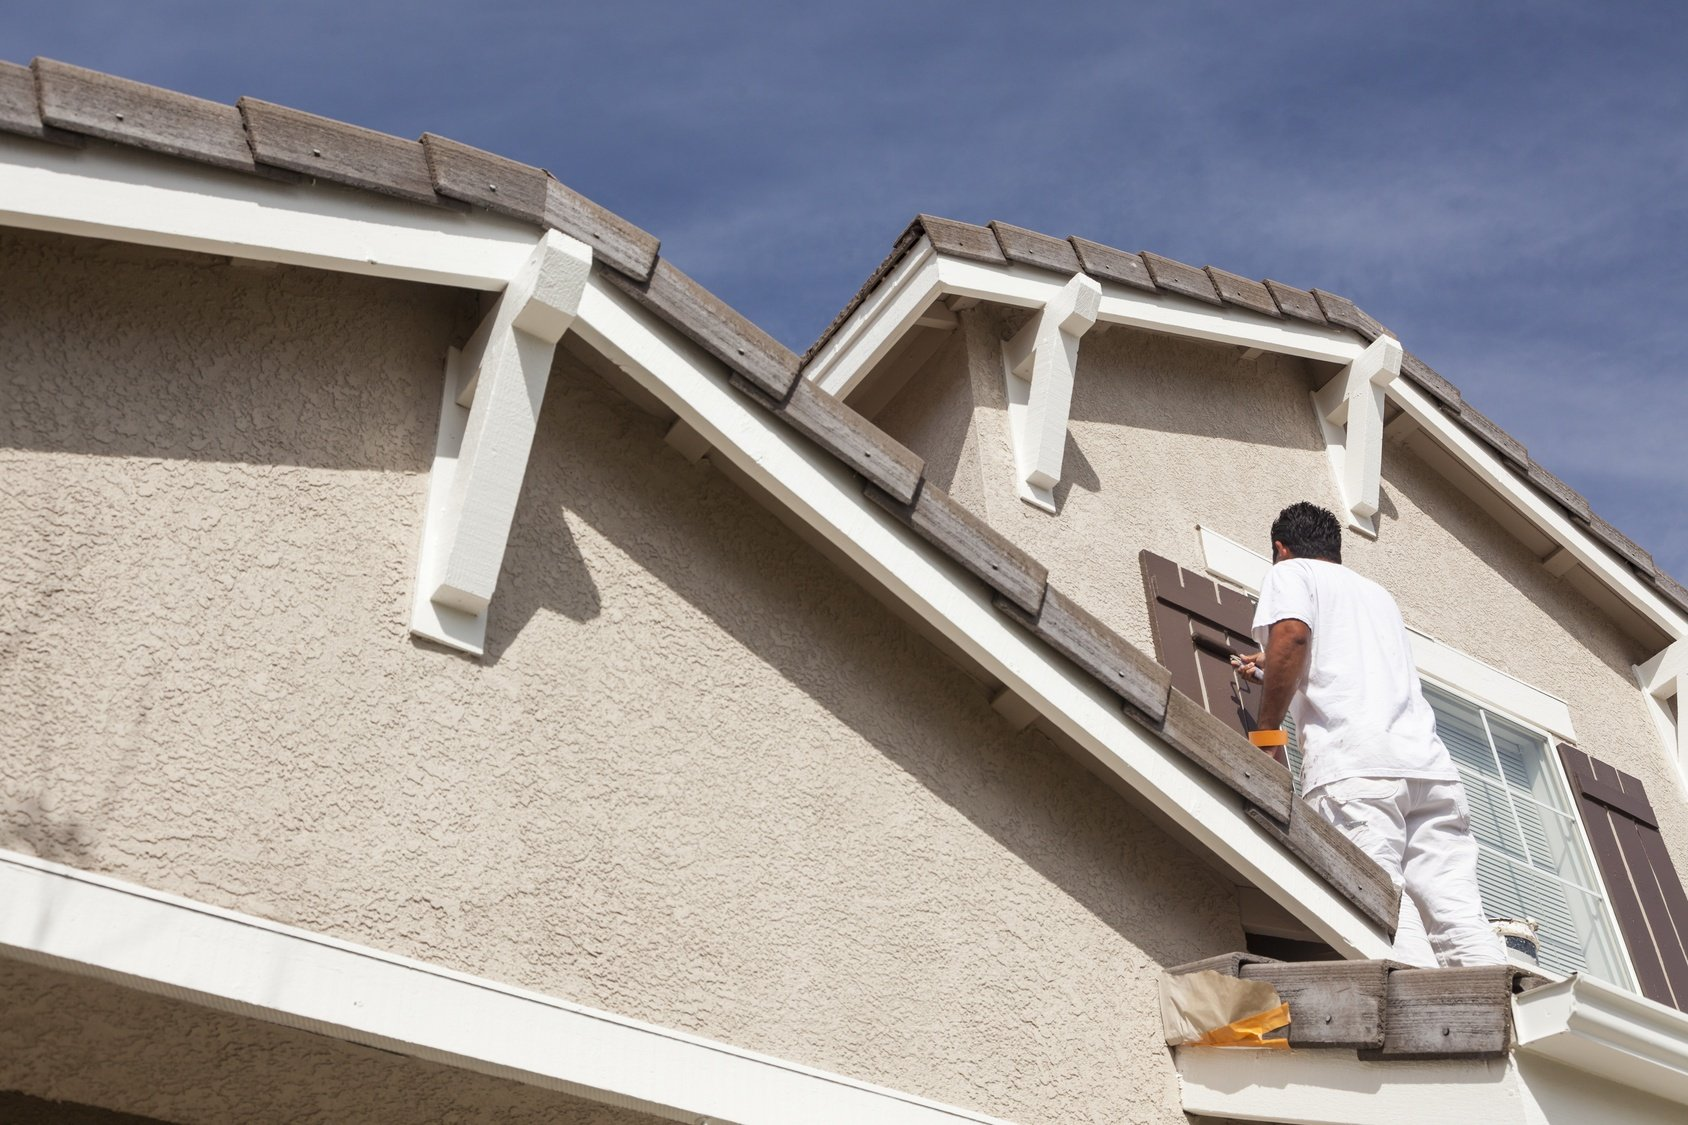 Man painting house in Tempe